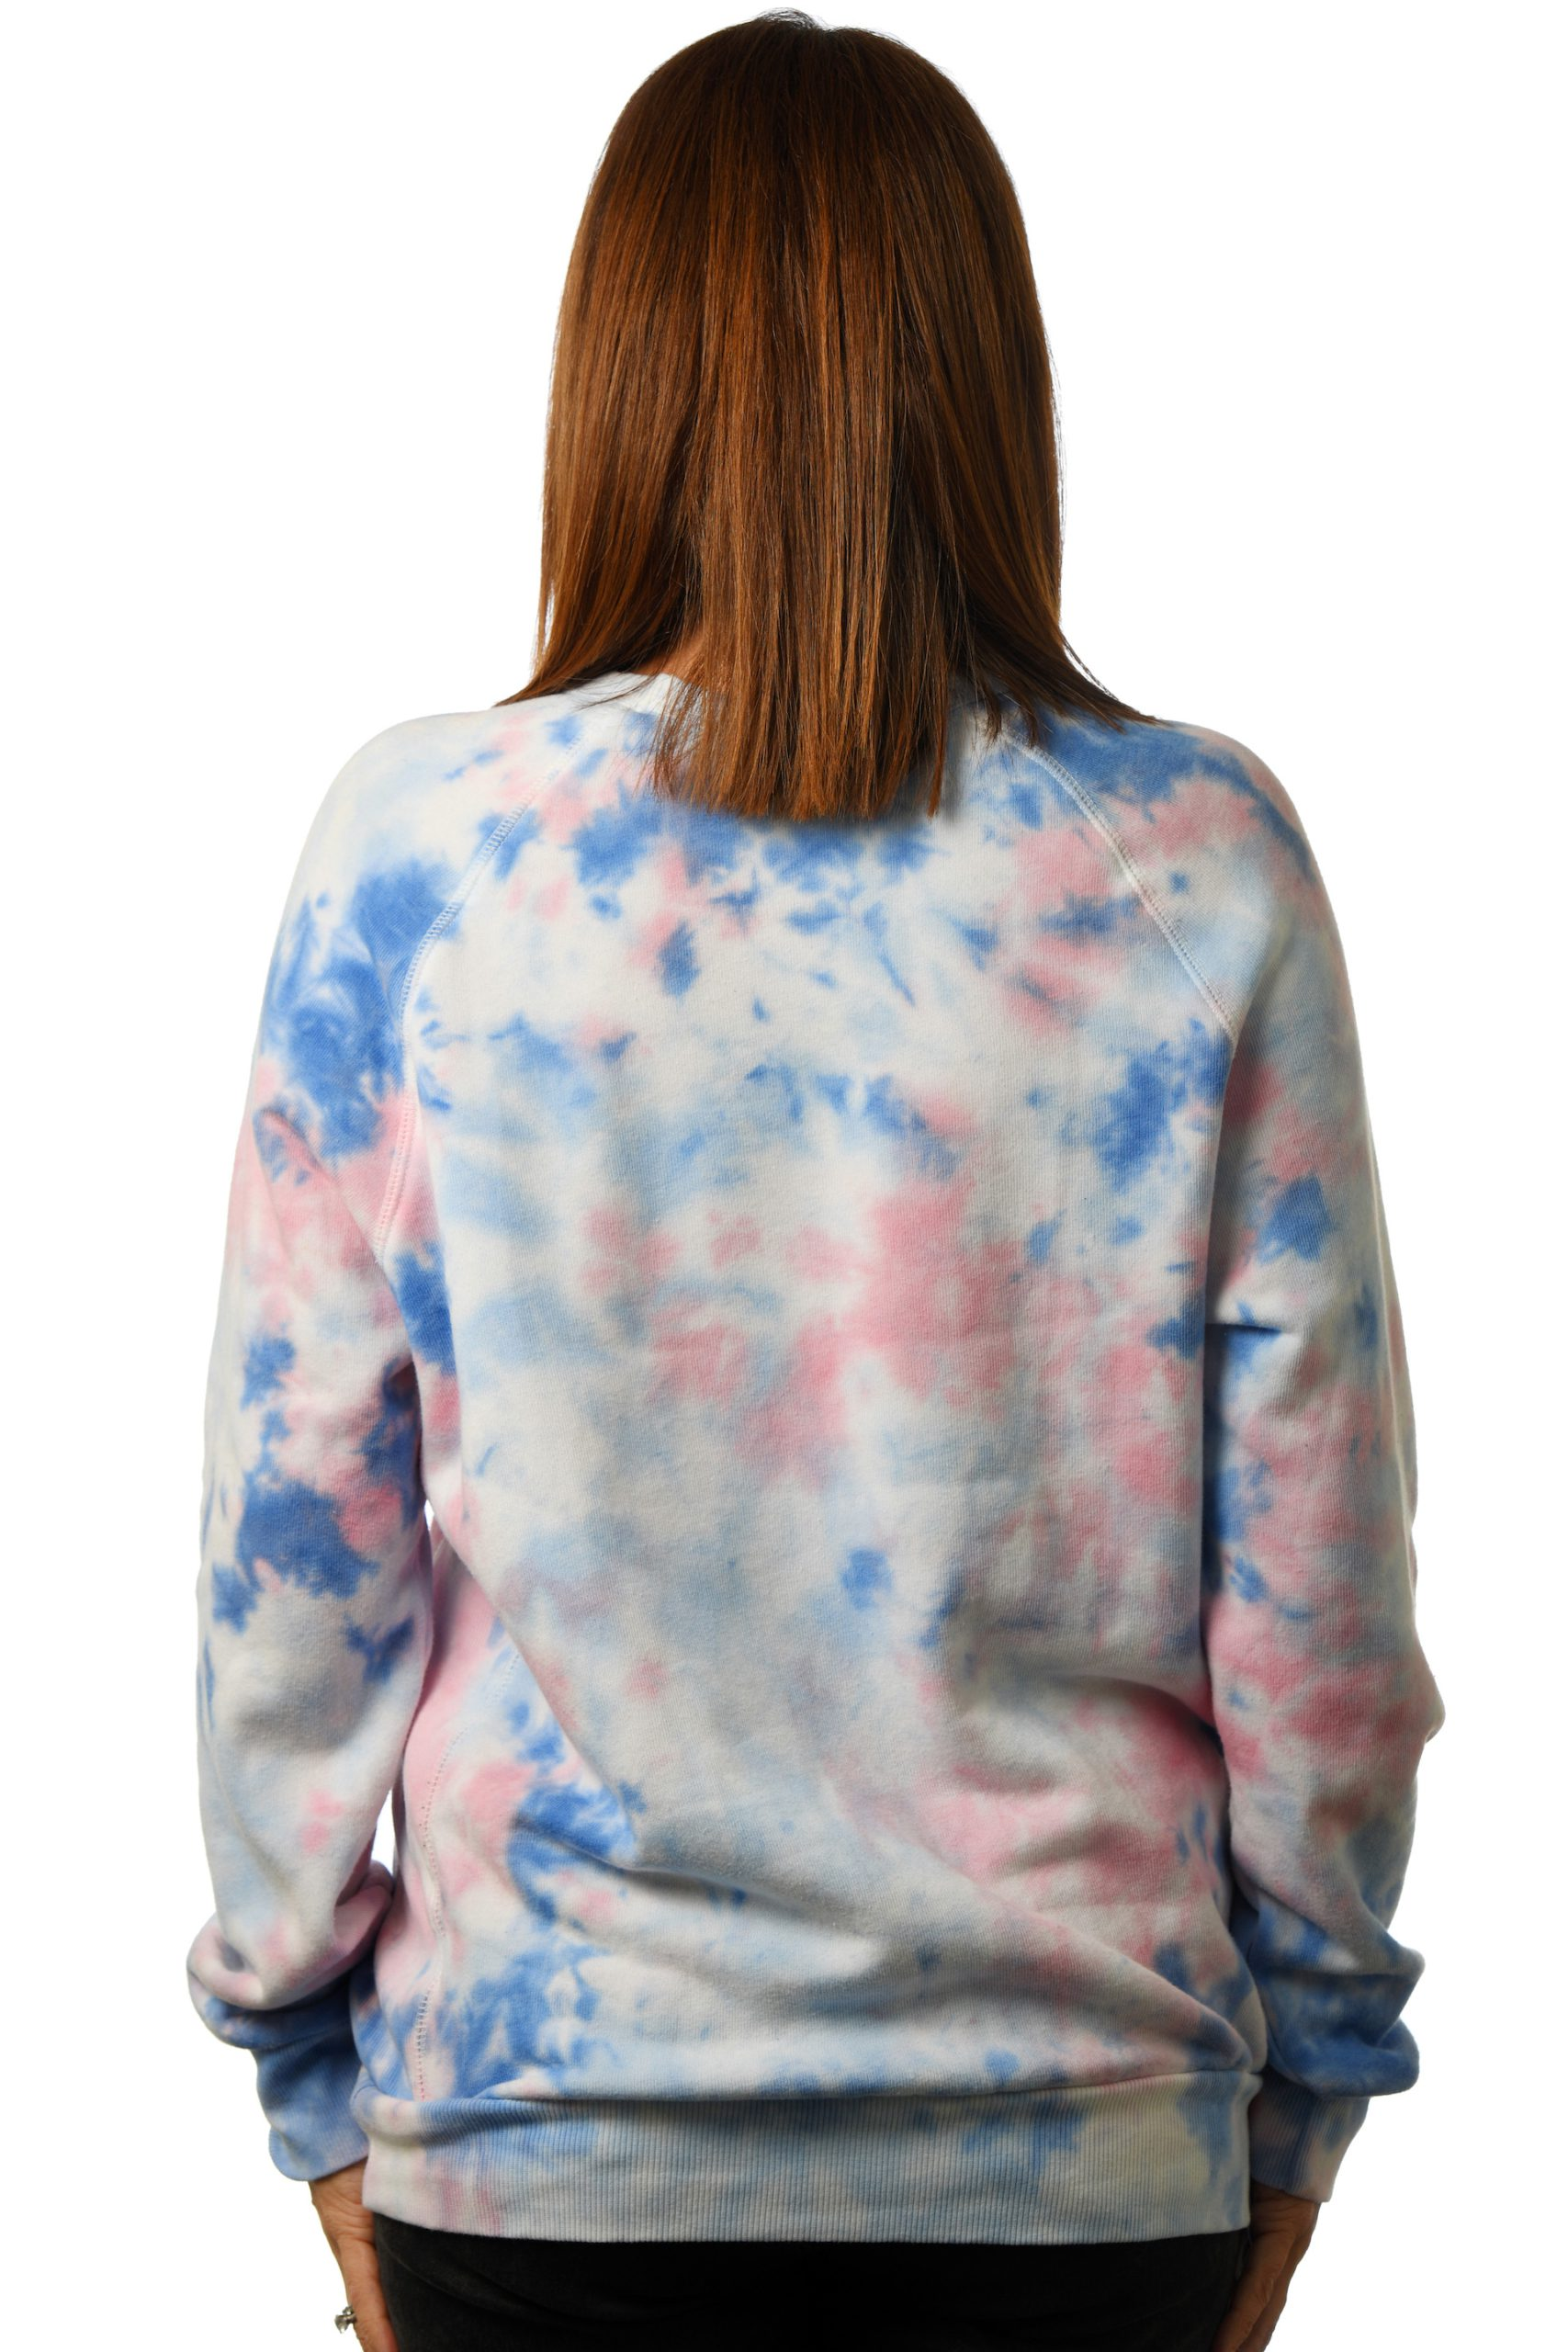 GG 798-G-TD Unisex Tiedye Old School Fleece Raglan back